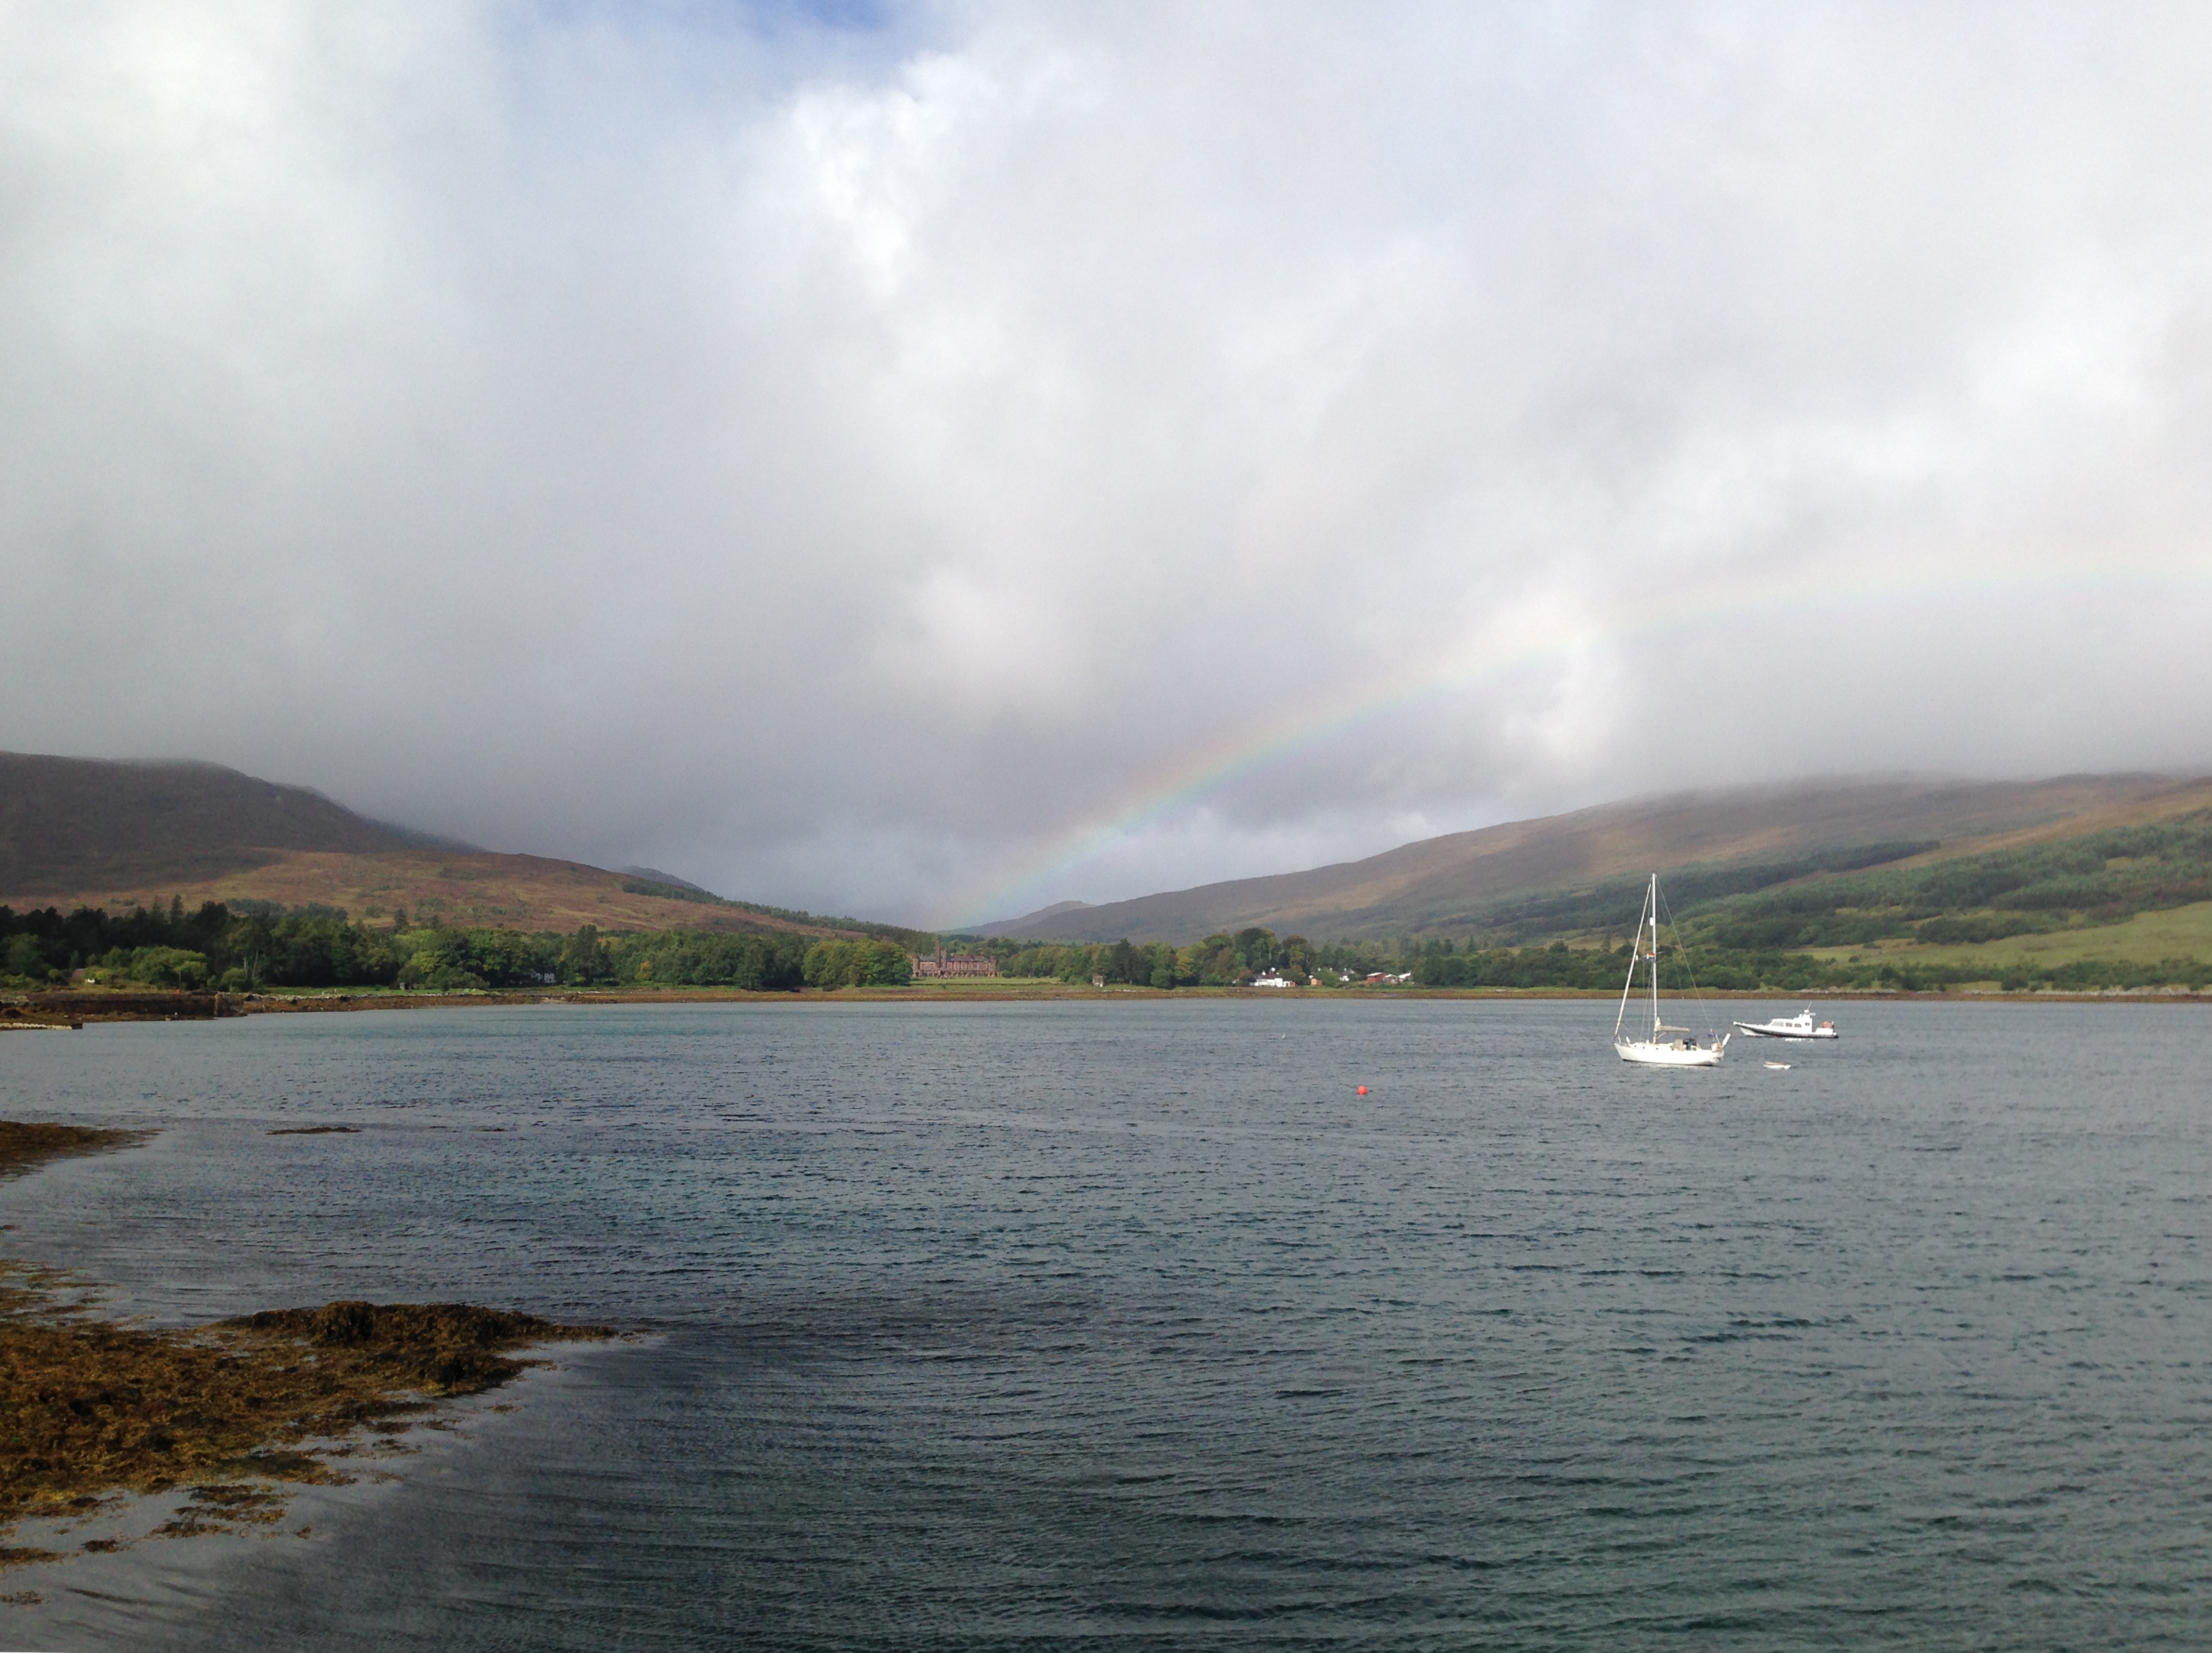 Kinloch Castle is just visible at the end of the rainbow